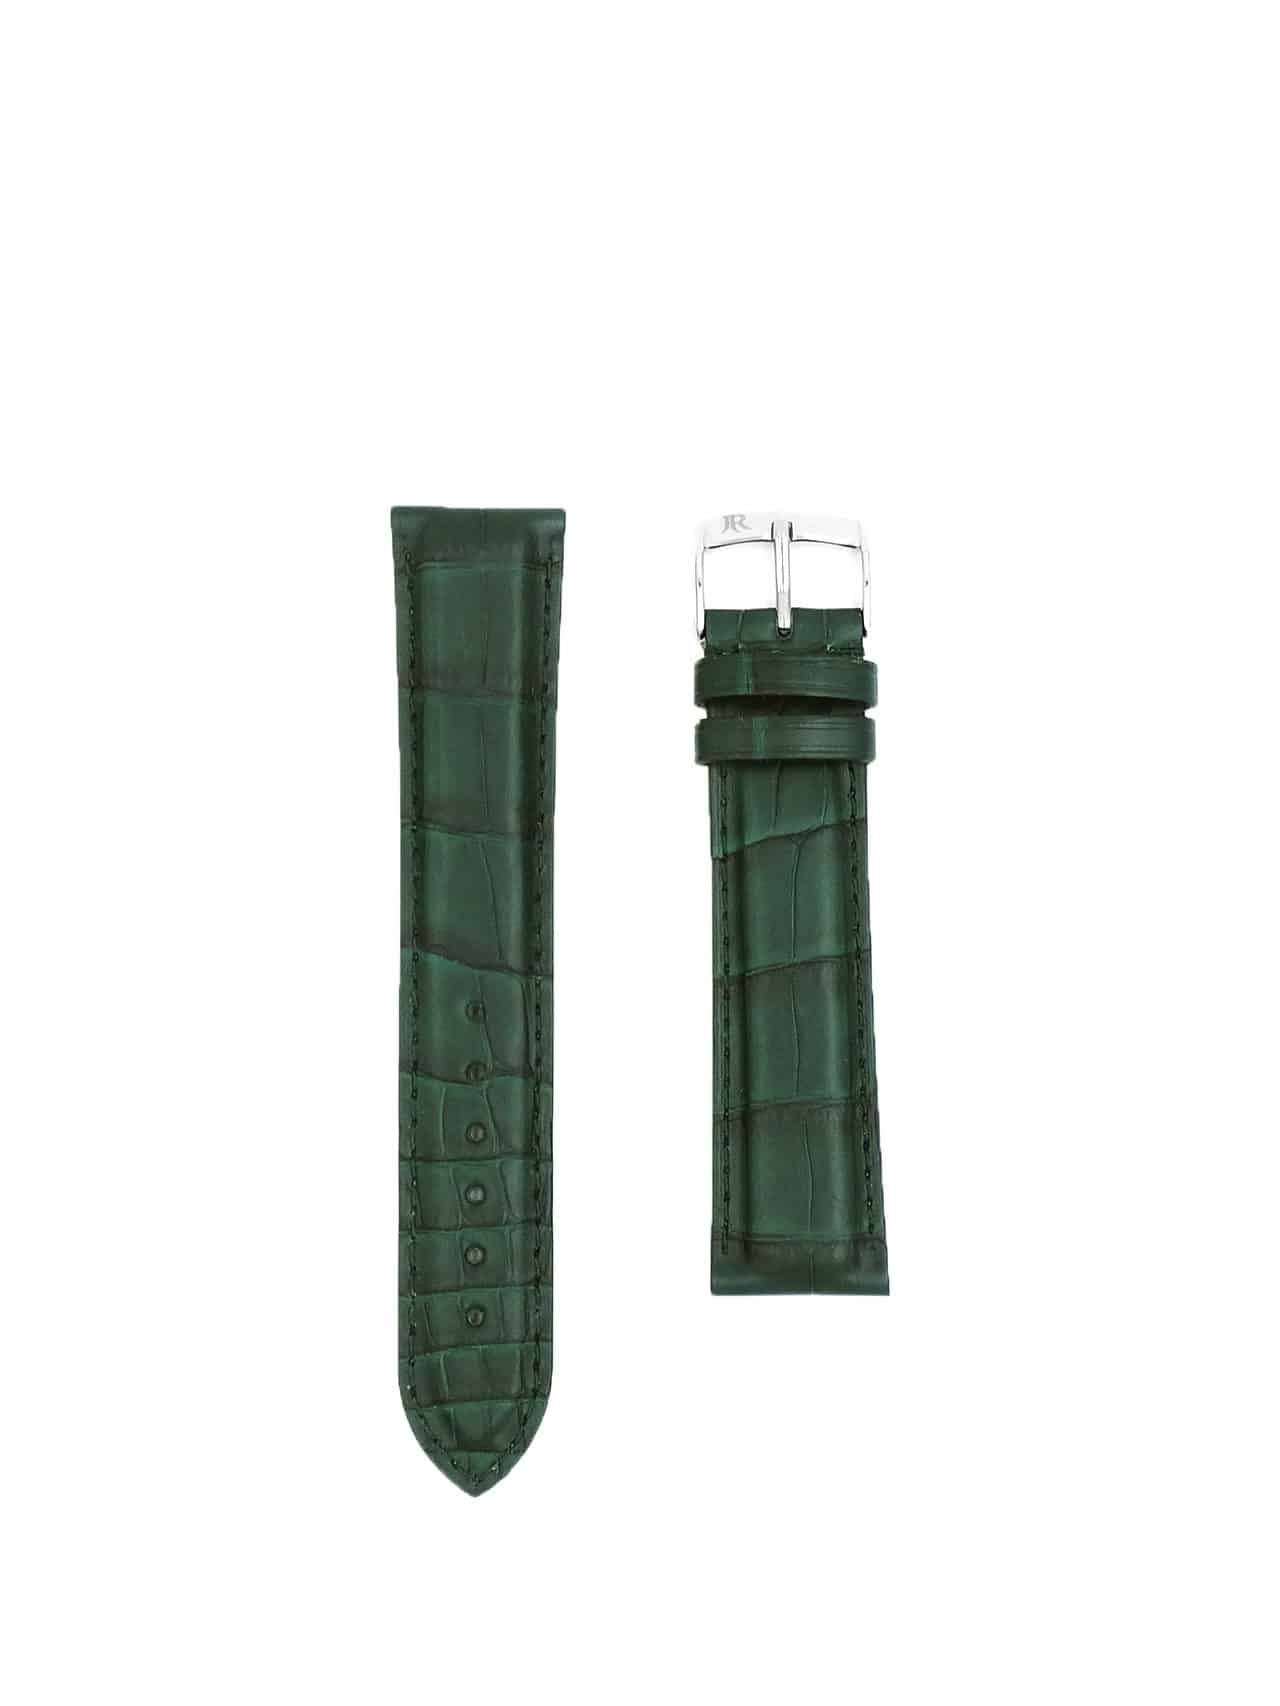 watch straps nyc alligator green